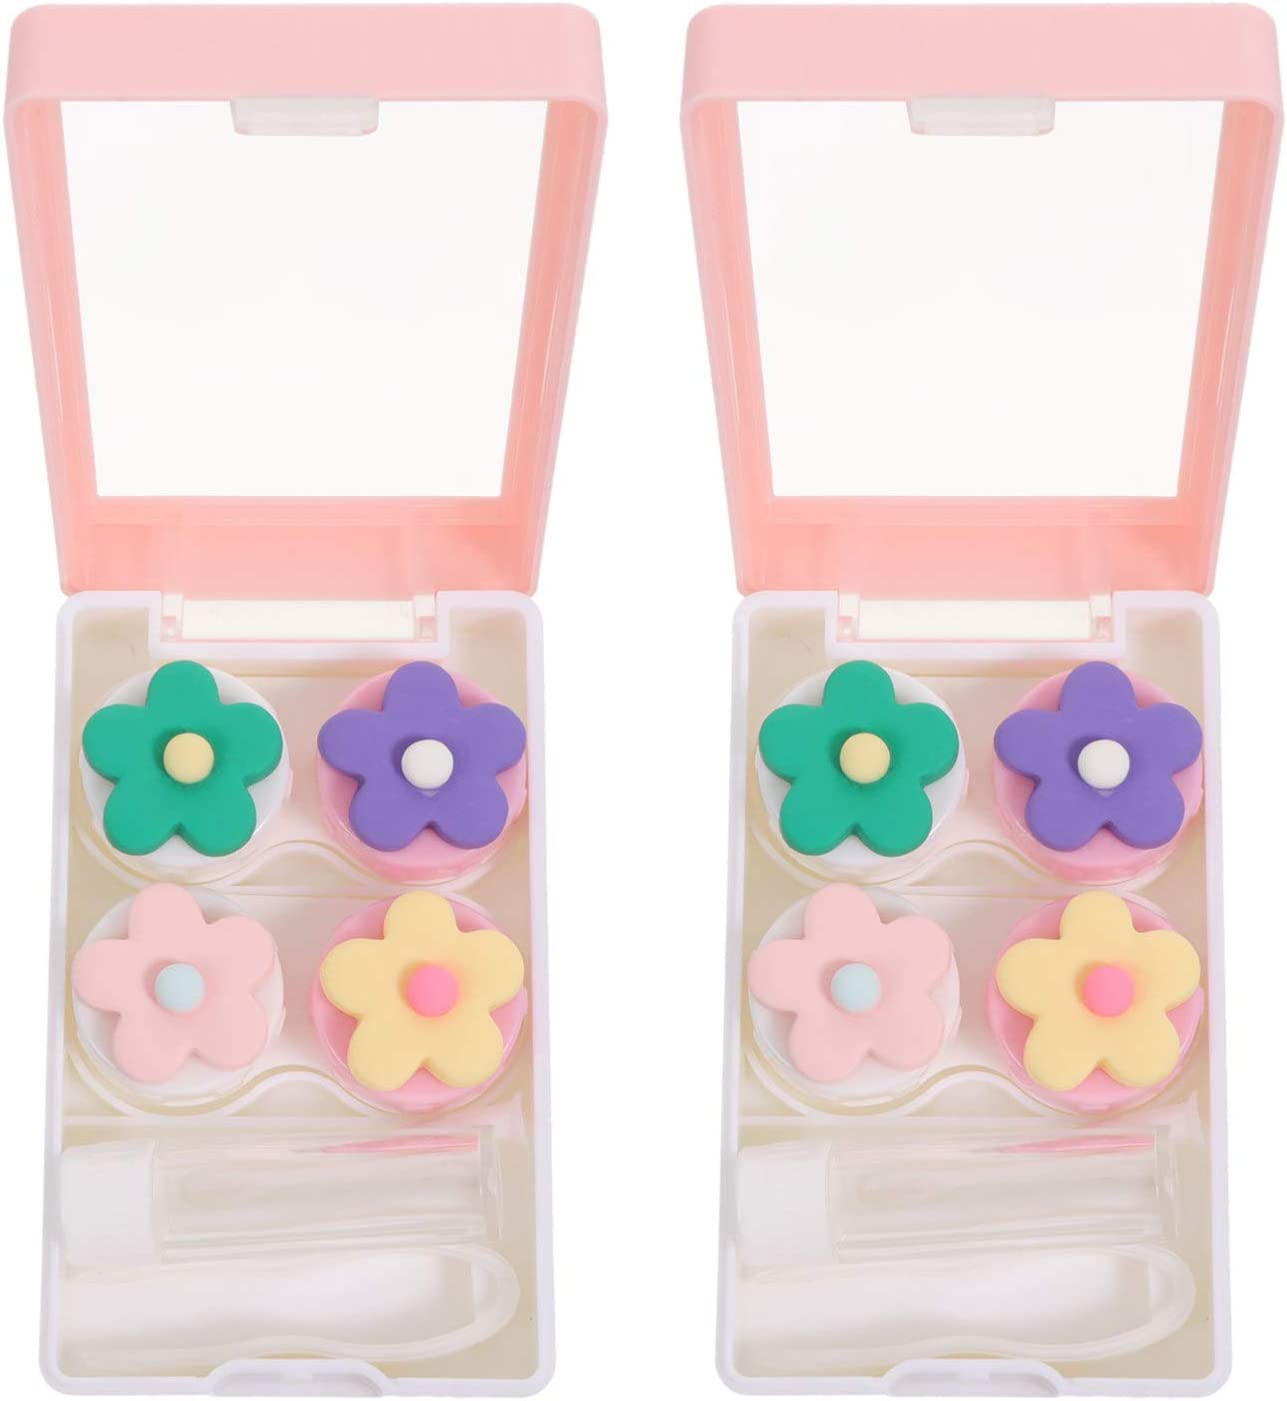 HEALLILY 2Pcs Lovely Lens Box sale B Super beauty product restock quality top! Portable Case Simple Travel